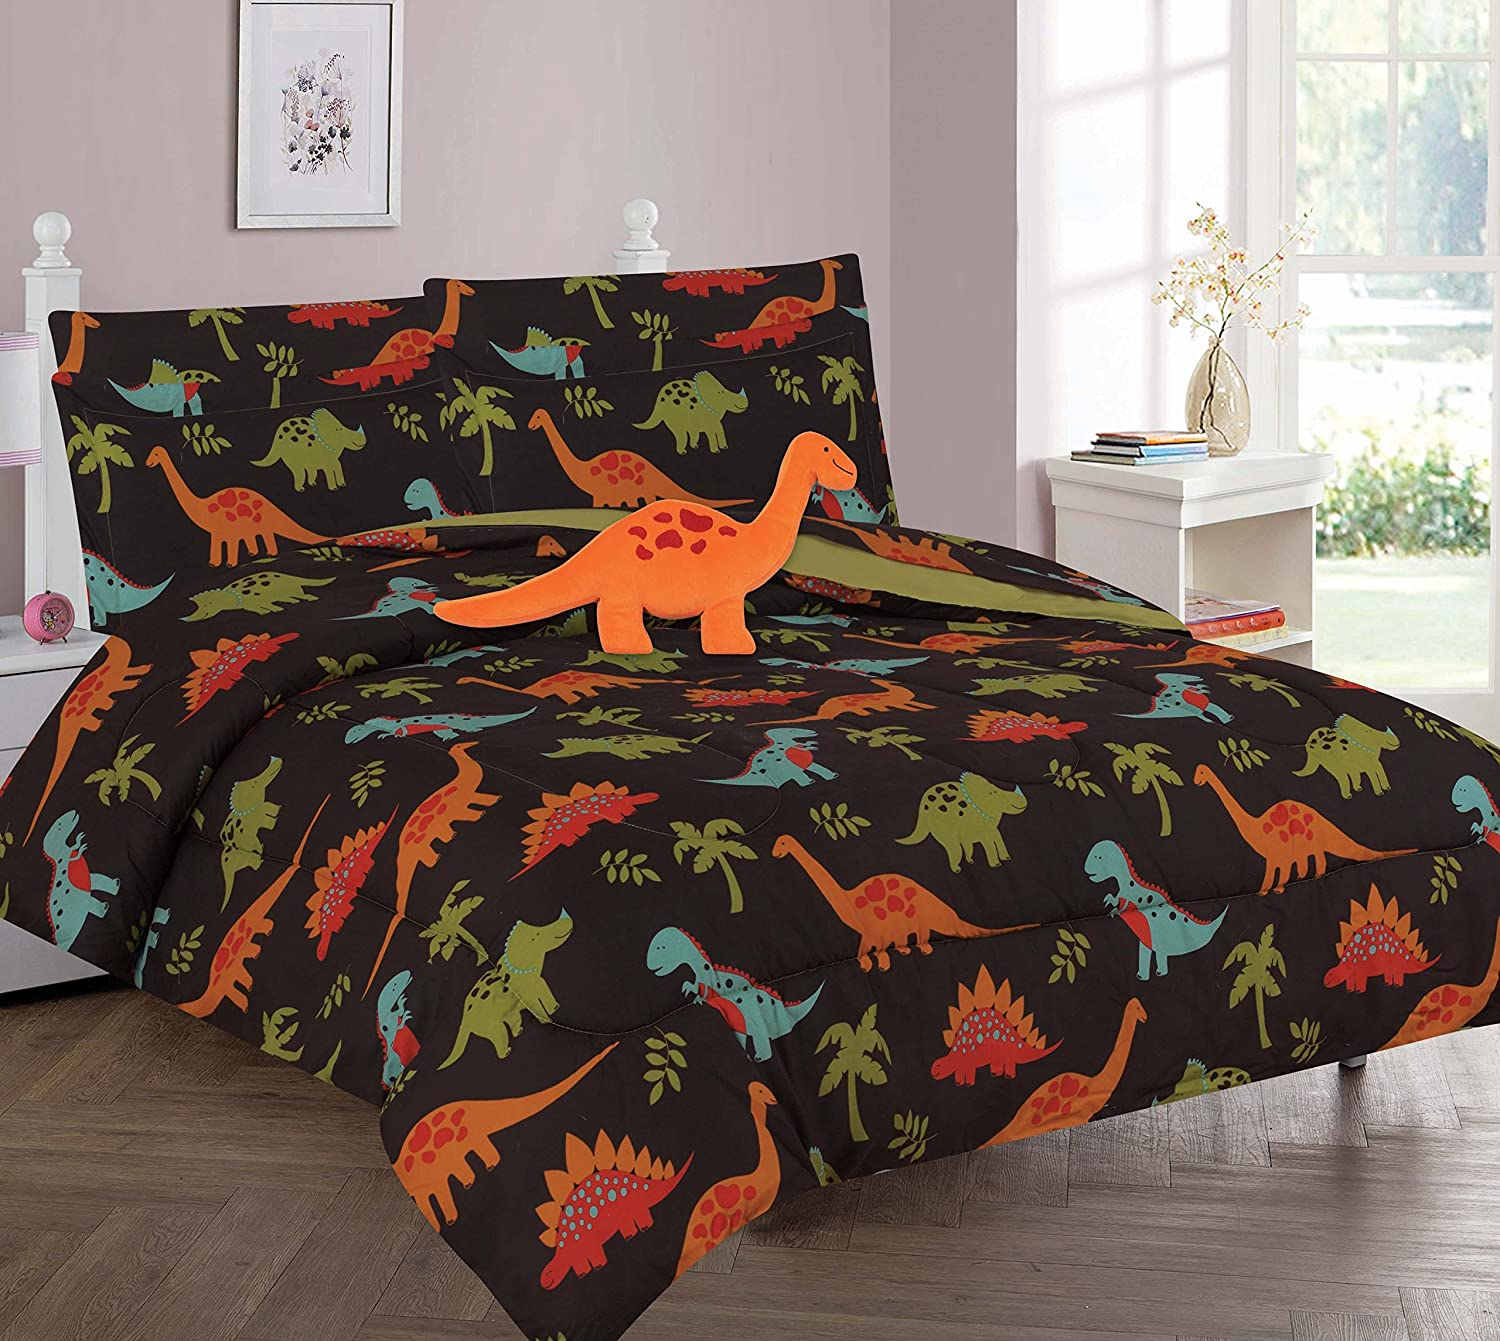 Twin & Full 6 Pcs or 8 Pcs Comforter/ Coverlet / Bed in Bag Set with Toy (Full, Dinosaur Brown